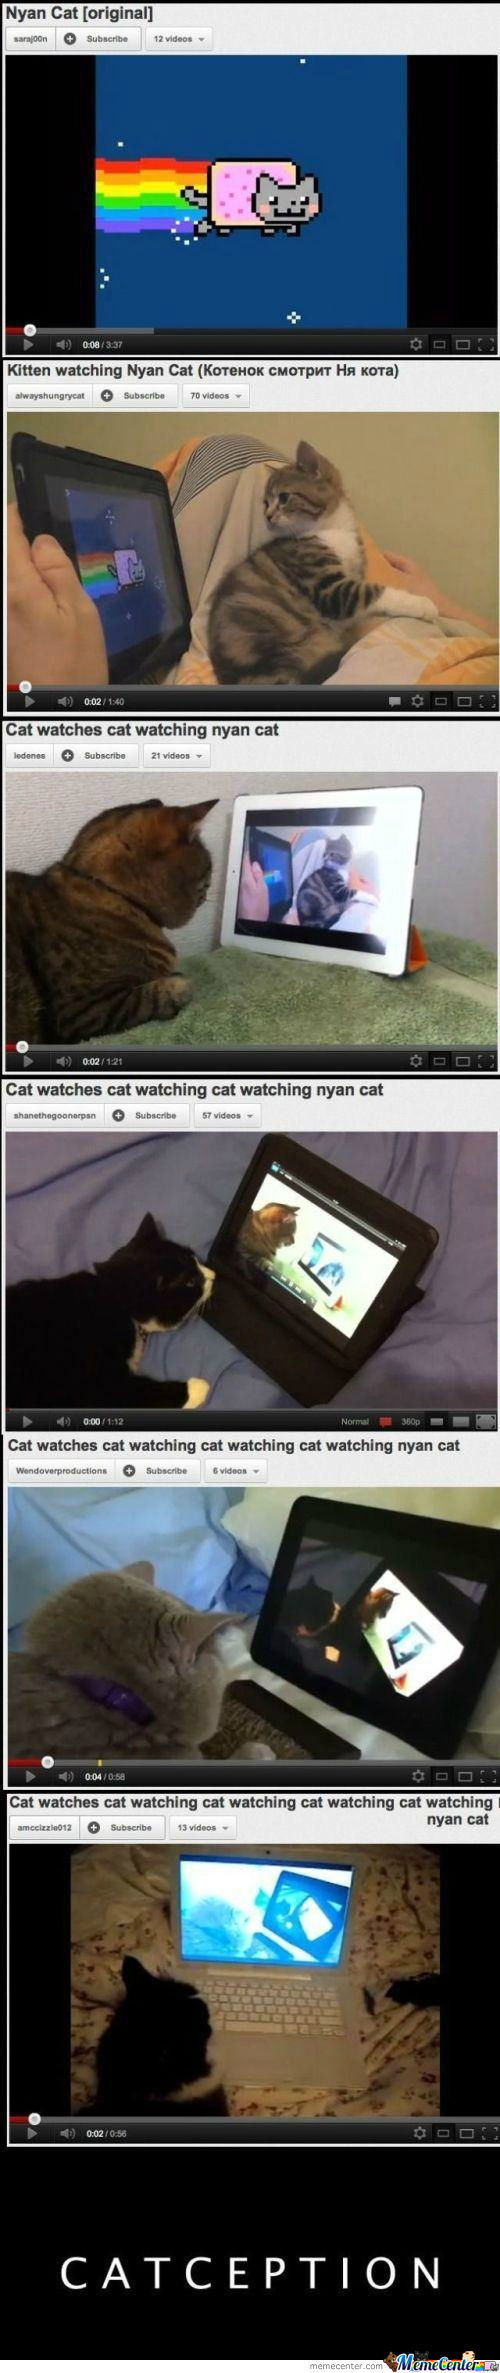 [RMX] Inception? Catception